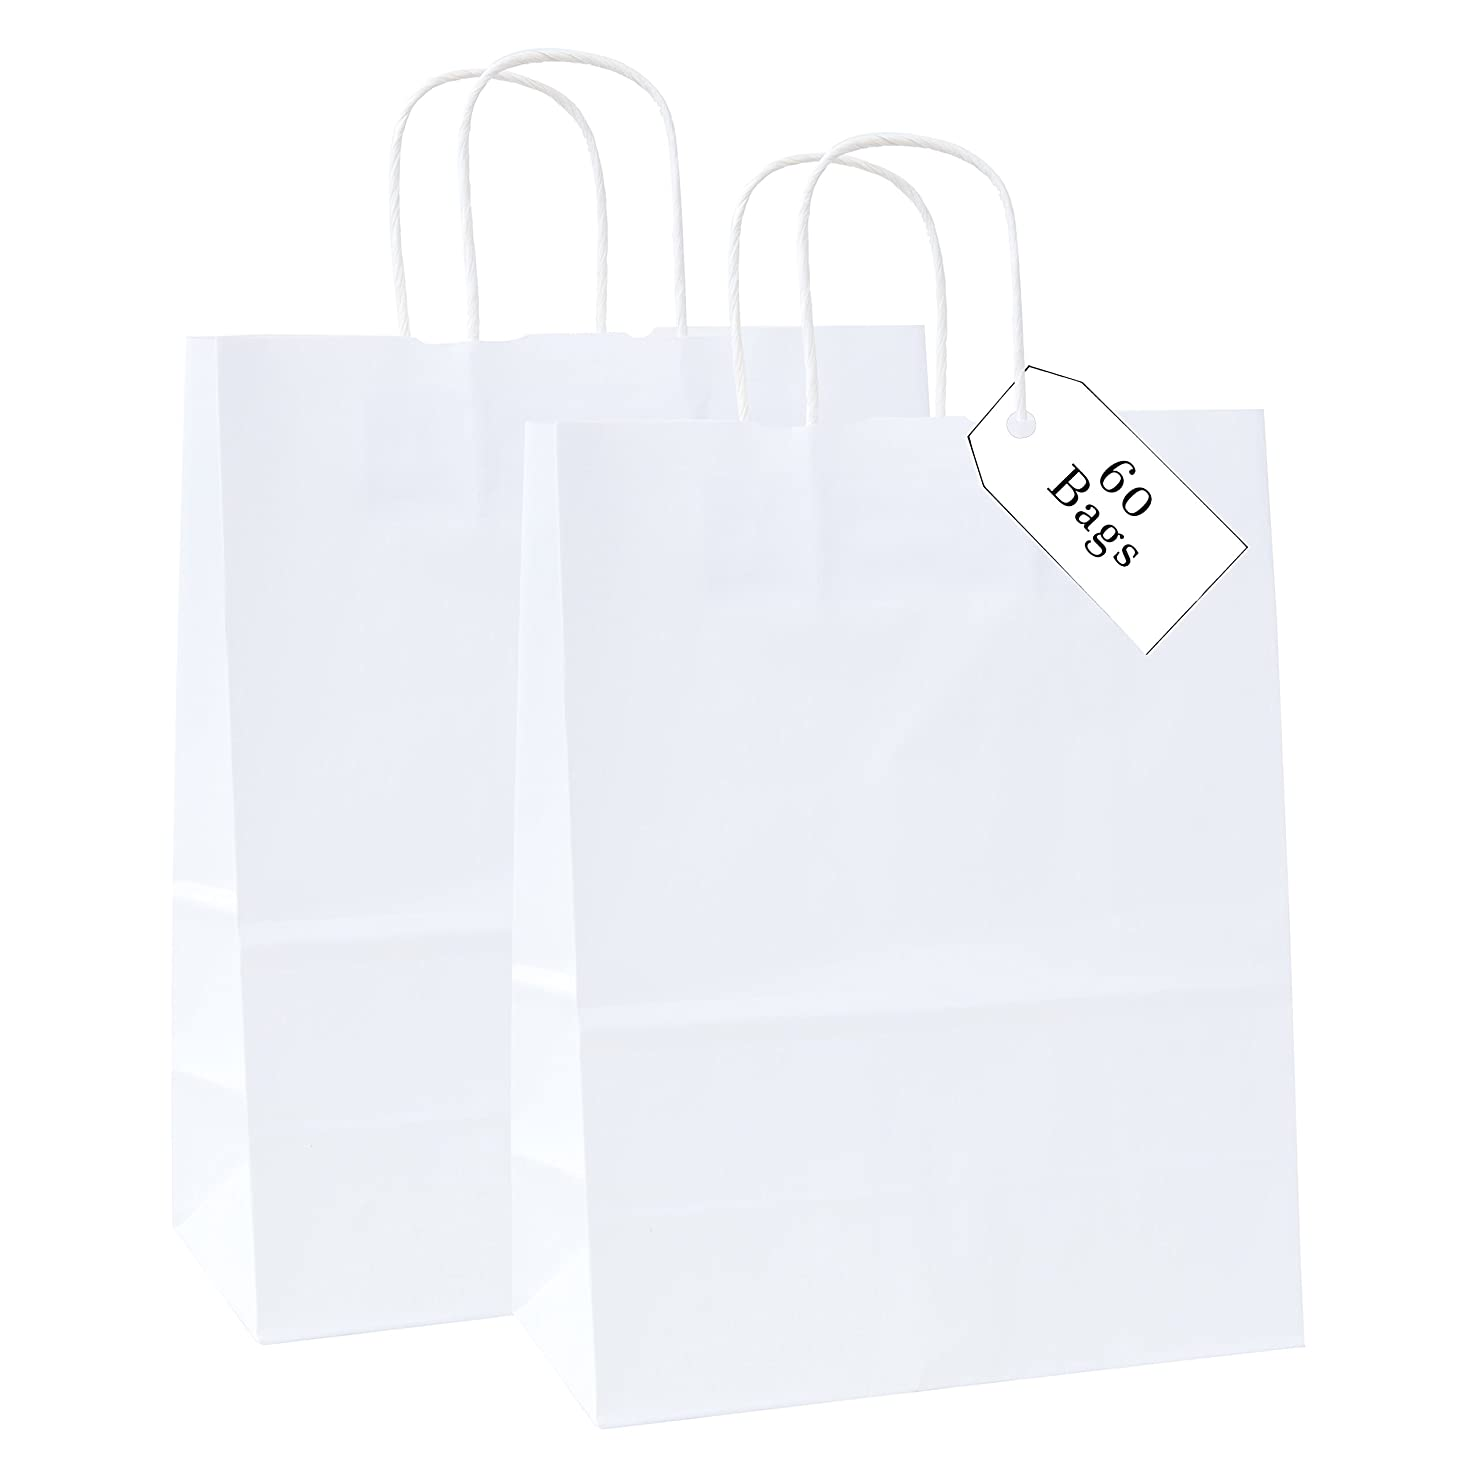 100% Recycled Medium Kraft Paper Bag with Handles for Shopping, Lunch, Retail and Merchandise. Strong and Reusable- Incredible Packaging -10W x 5G x 13H - 80 Paper Thickness (60, White)